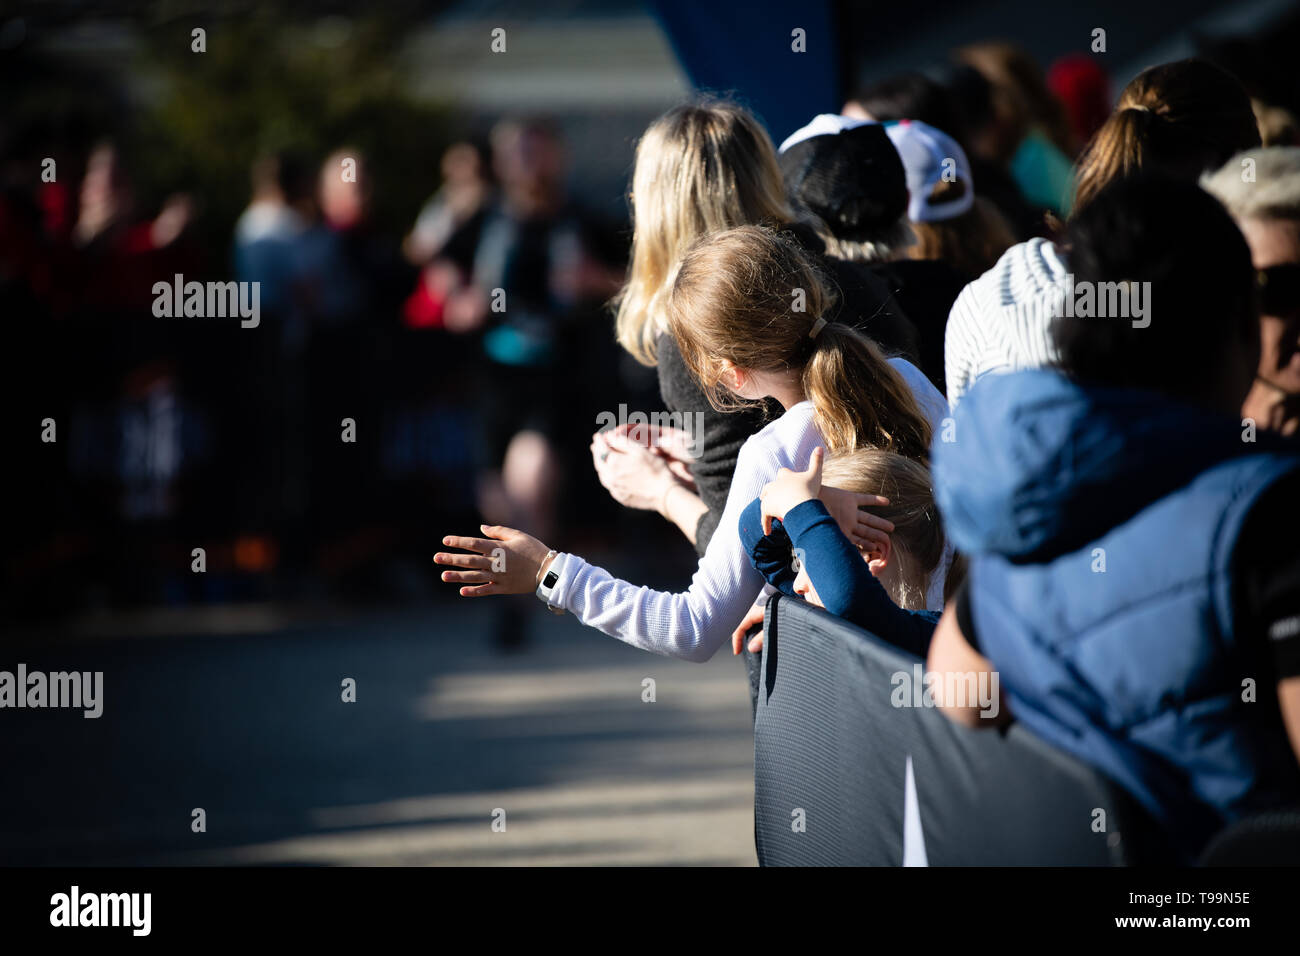 Blue Mountains, Australia - April 16 2019: Ultra-Trail Australia UTA11 race. Crowd watches runners about to finish on home stretch. - Stock Image